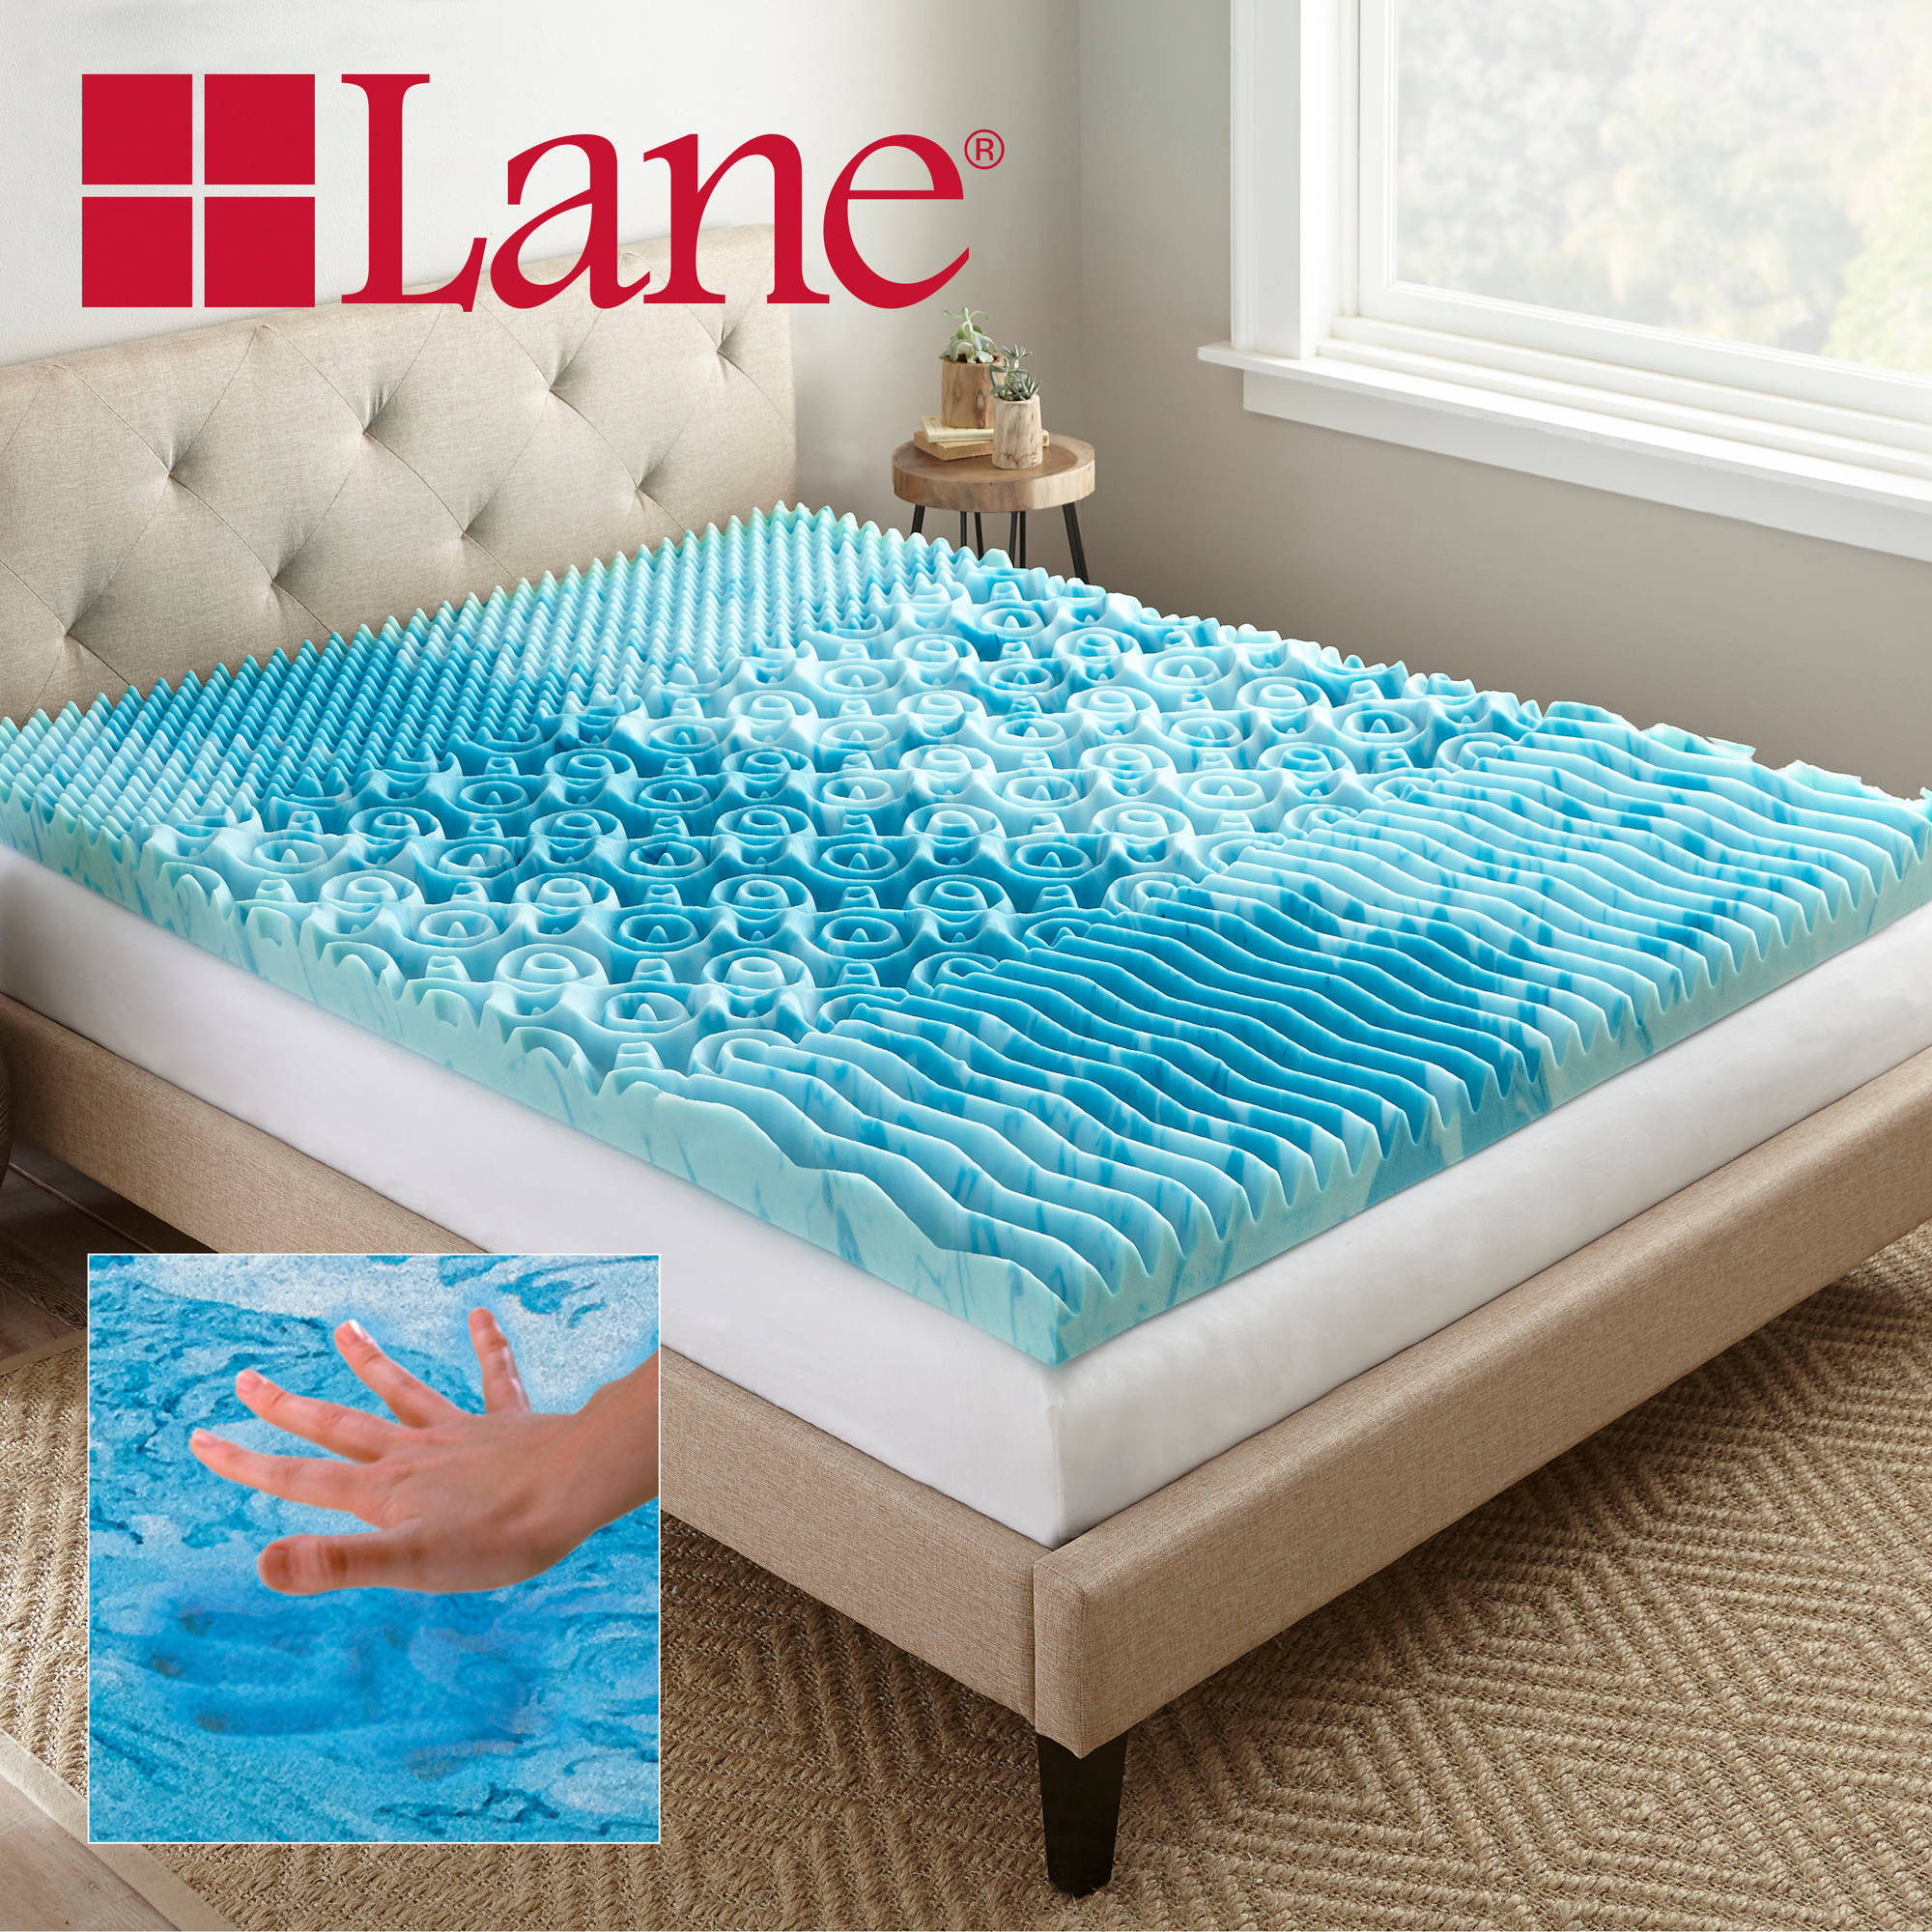 "Lane 3"" Cooling GelLux Memory Foam Gel Mattress Topper ..."